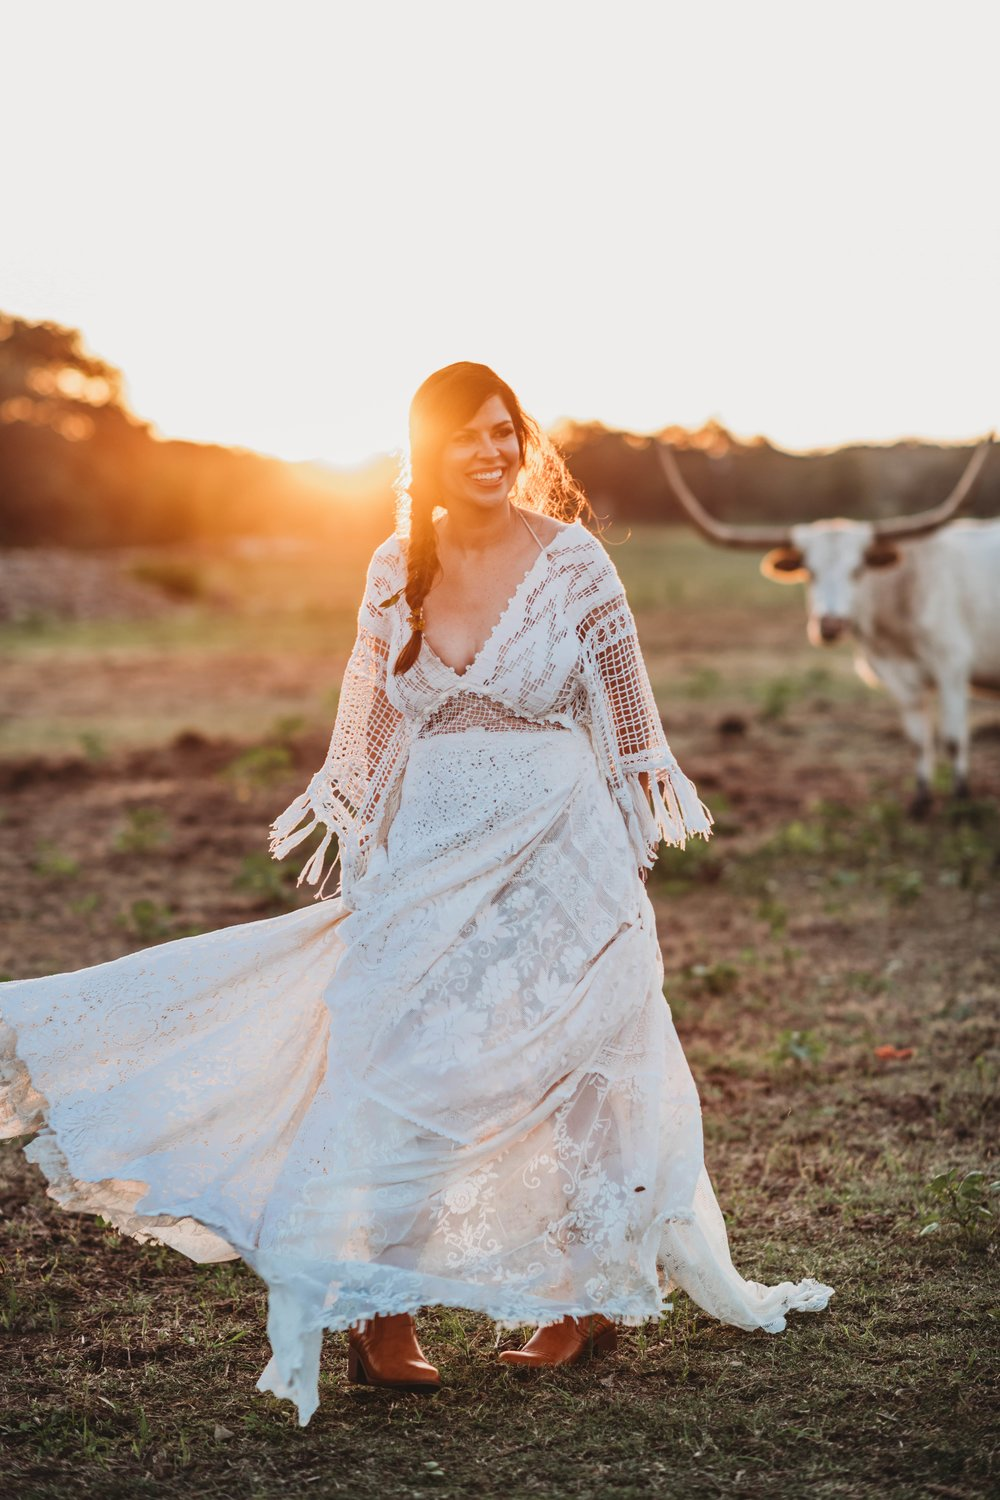 4.Weddings Inspired By Nature & The Countryside - Weddings that take advantage of our beautiful British countryside is an unstoppable trend. As Joanne Kent of Berkshire Wedding Fairs says,